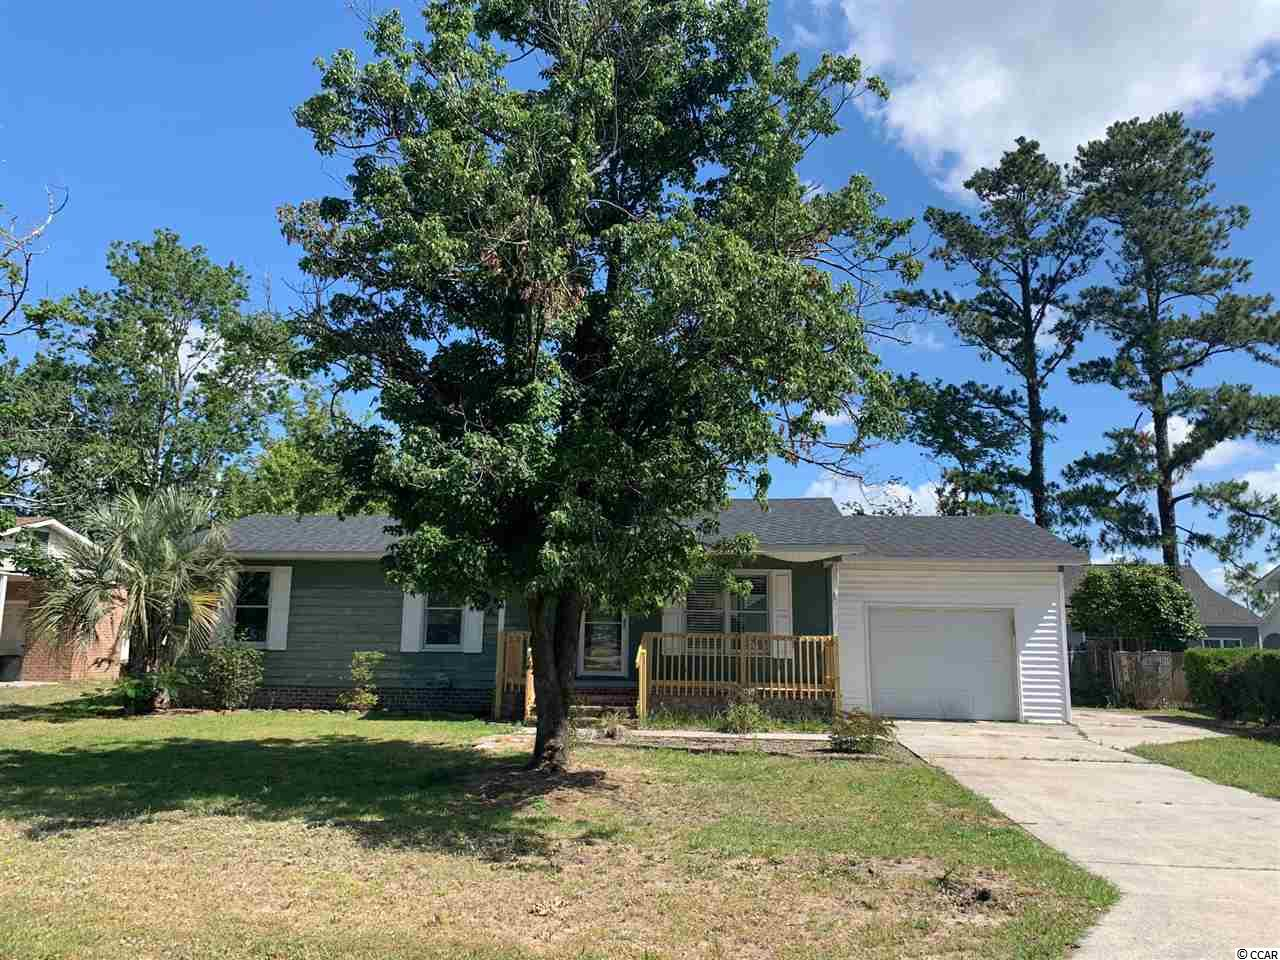 Nice home in small subdivision with no HOA fees.  Great location for primary or investment home.  New roof recently installed, large back porch, one car garage.